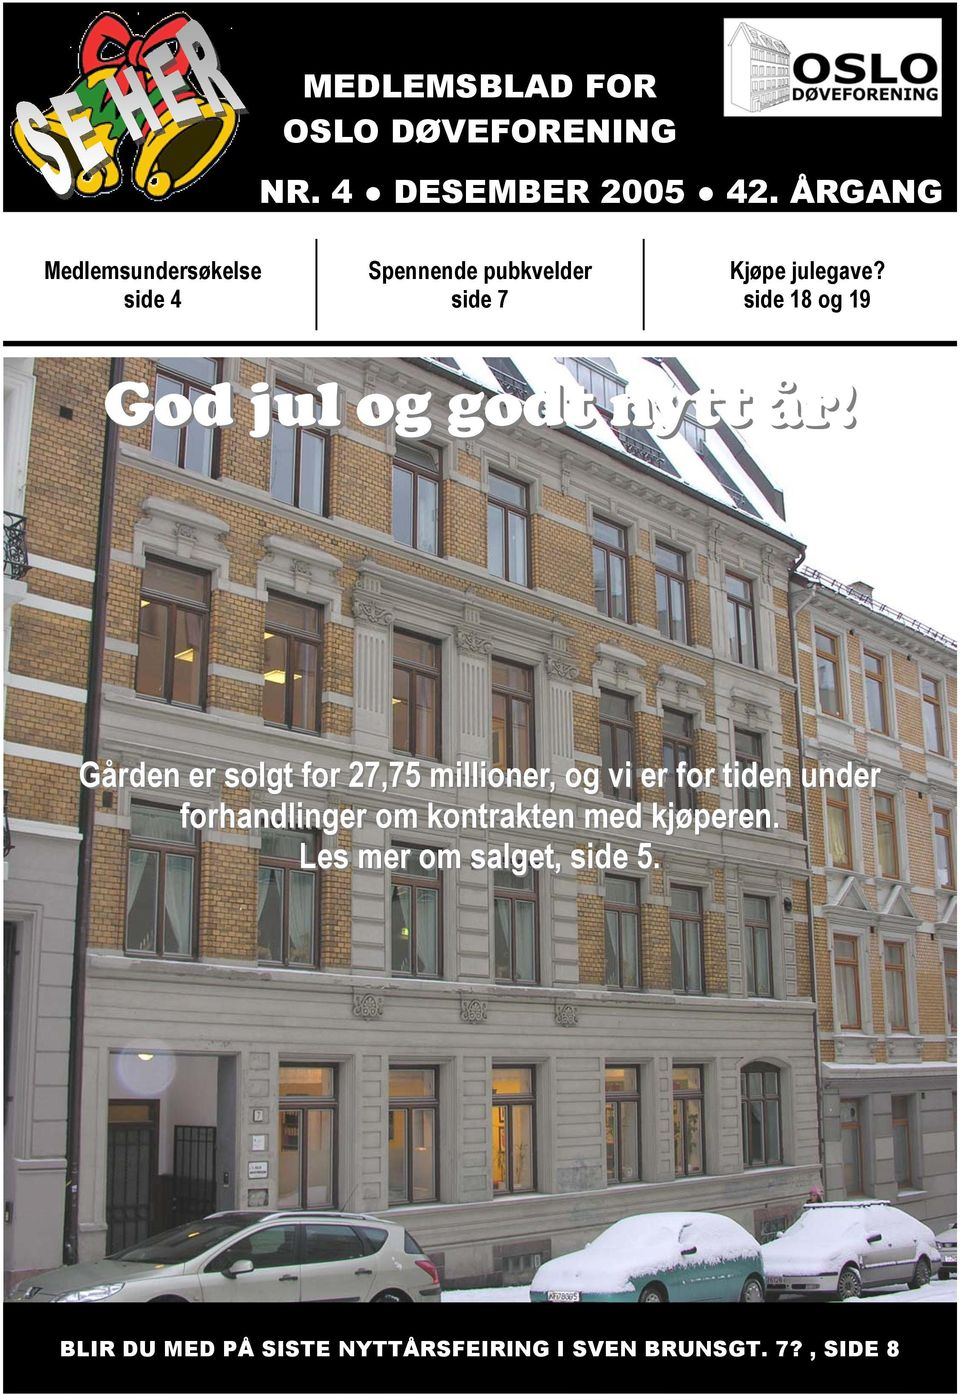 side 18 og 19 God jul og godt nytt år!